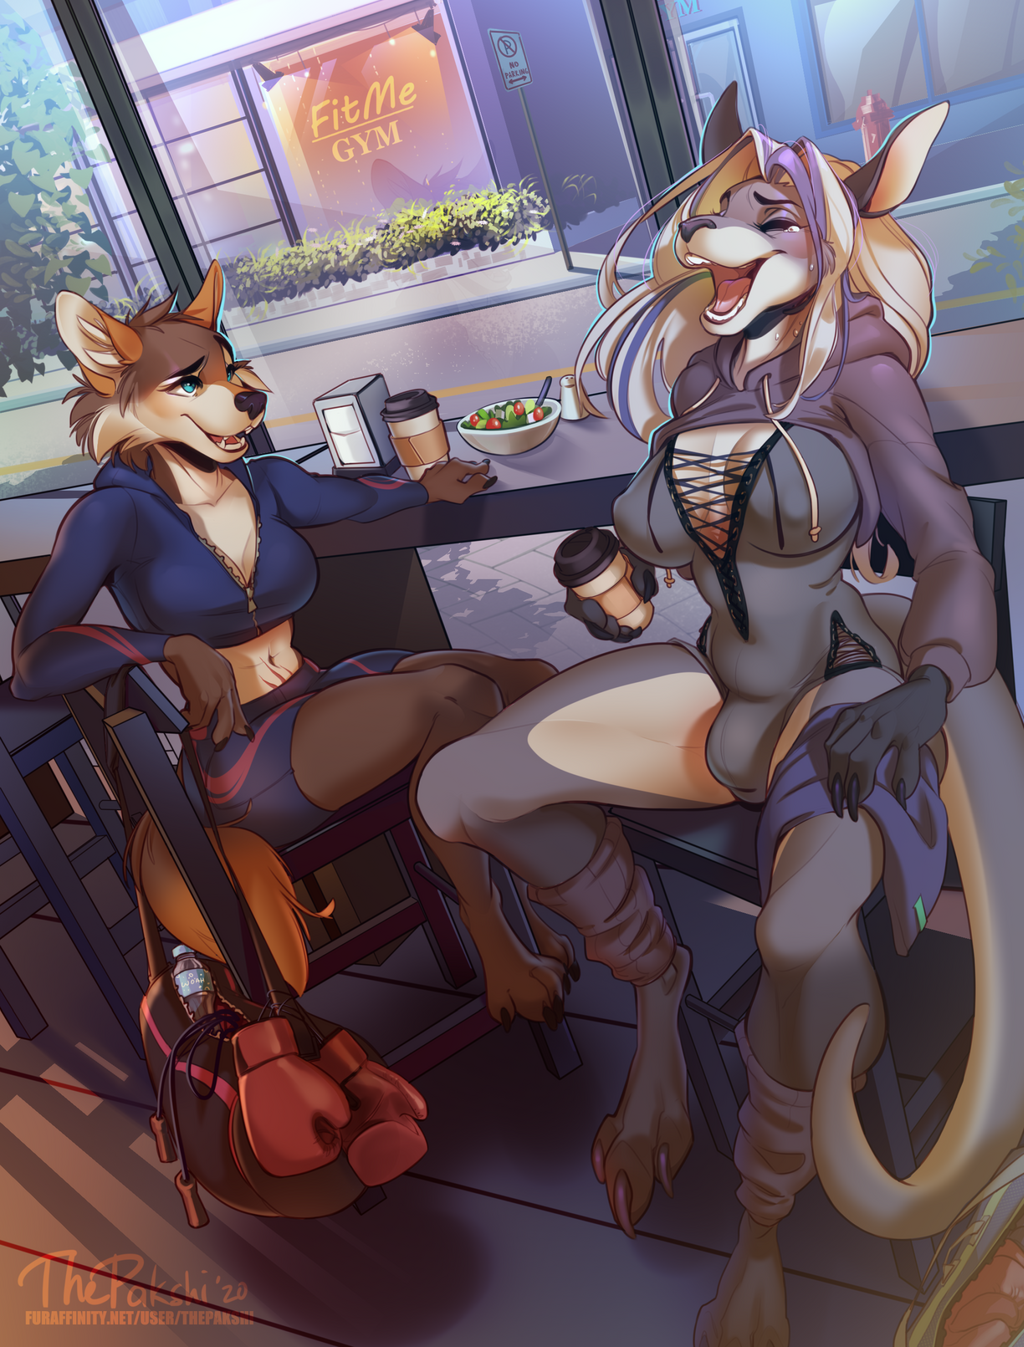 After Workout Bonding - By ThePakshi